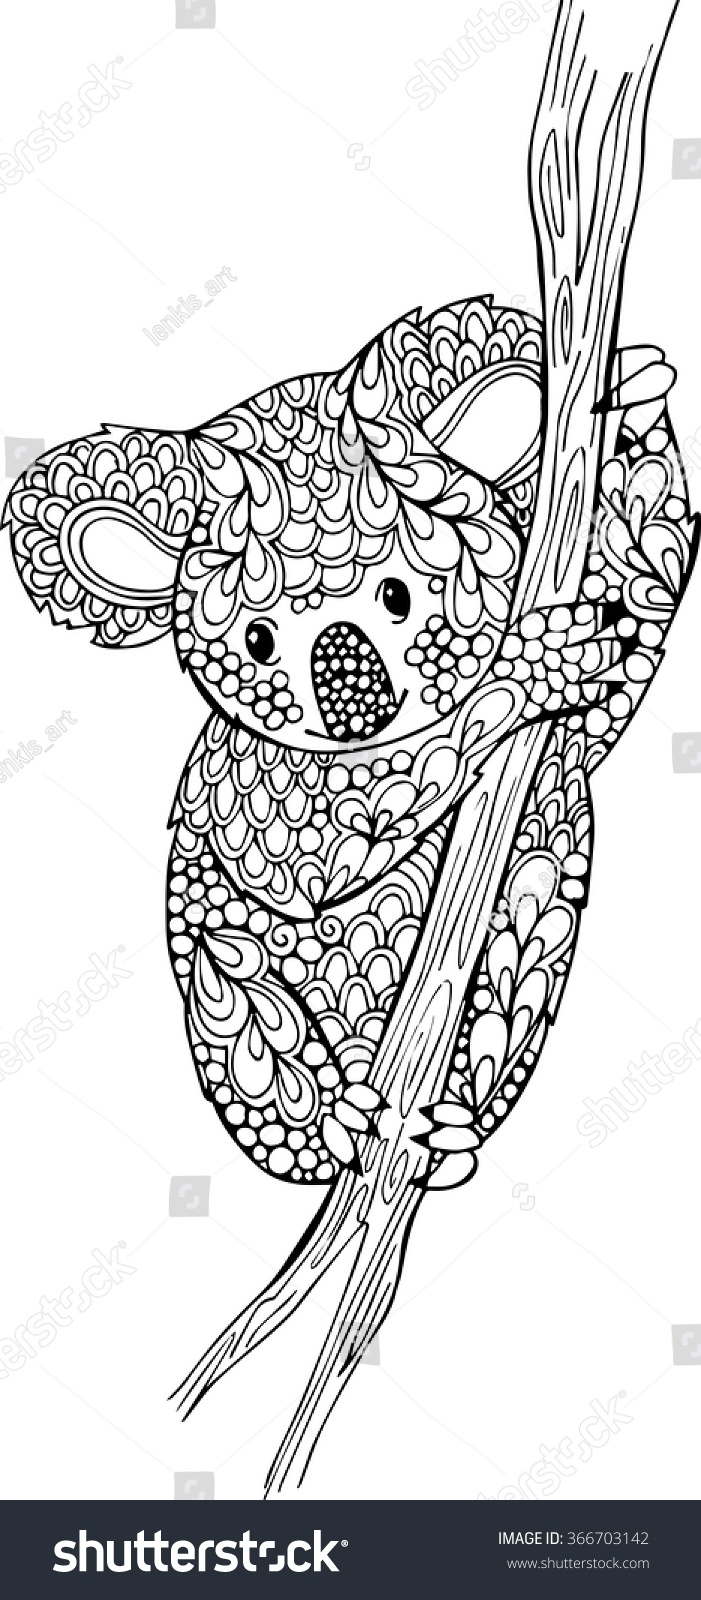 palm tree coloring pages - stock vector hand drawn doodle koala illustration outline monochrome vector koala bear drawing